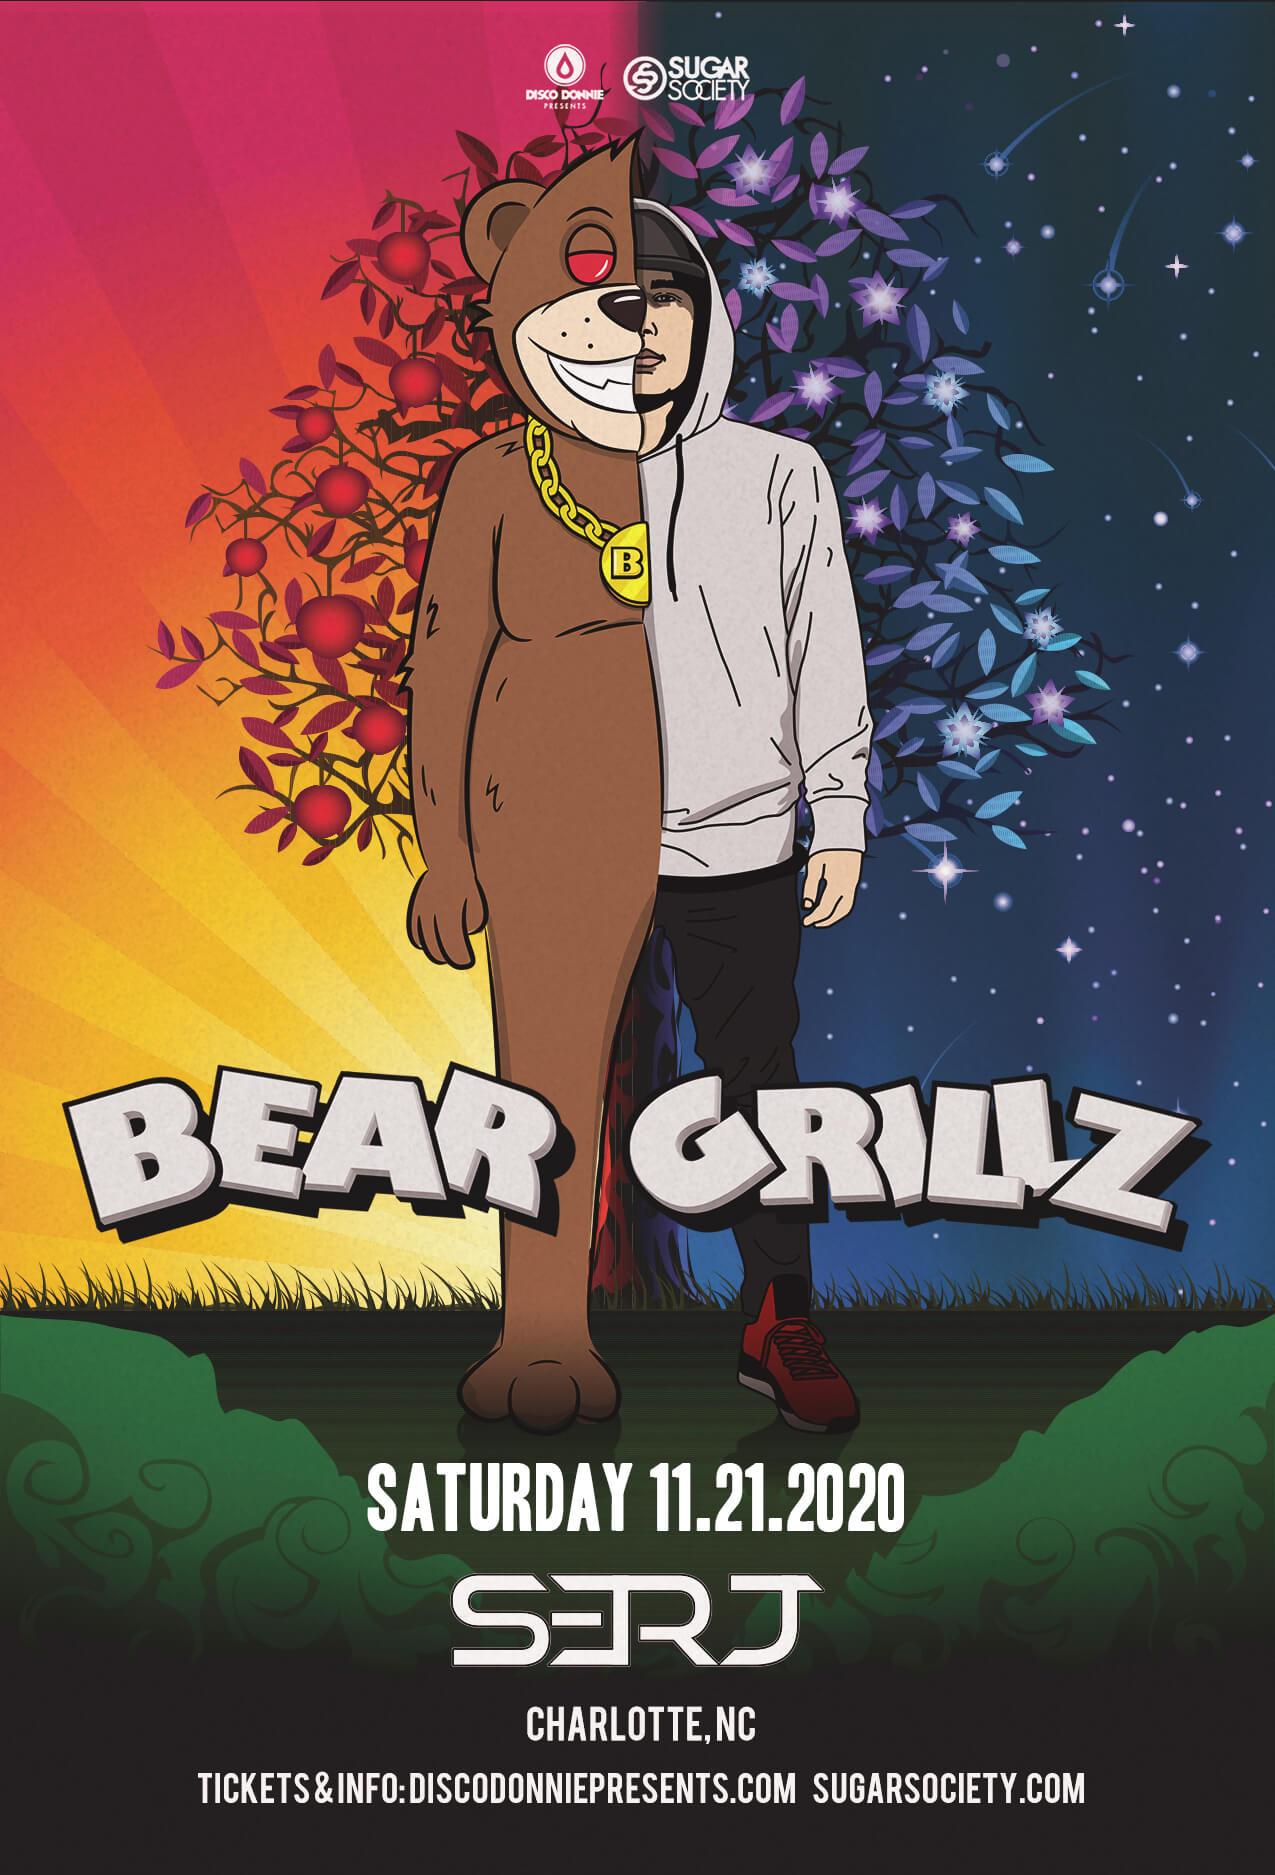 Bear Grillz in Charlotte